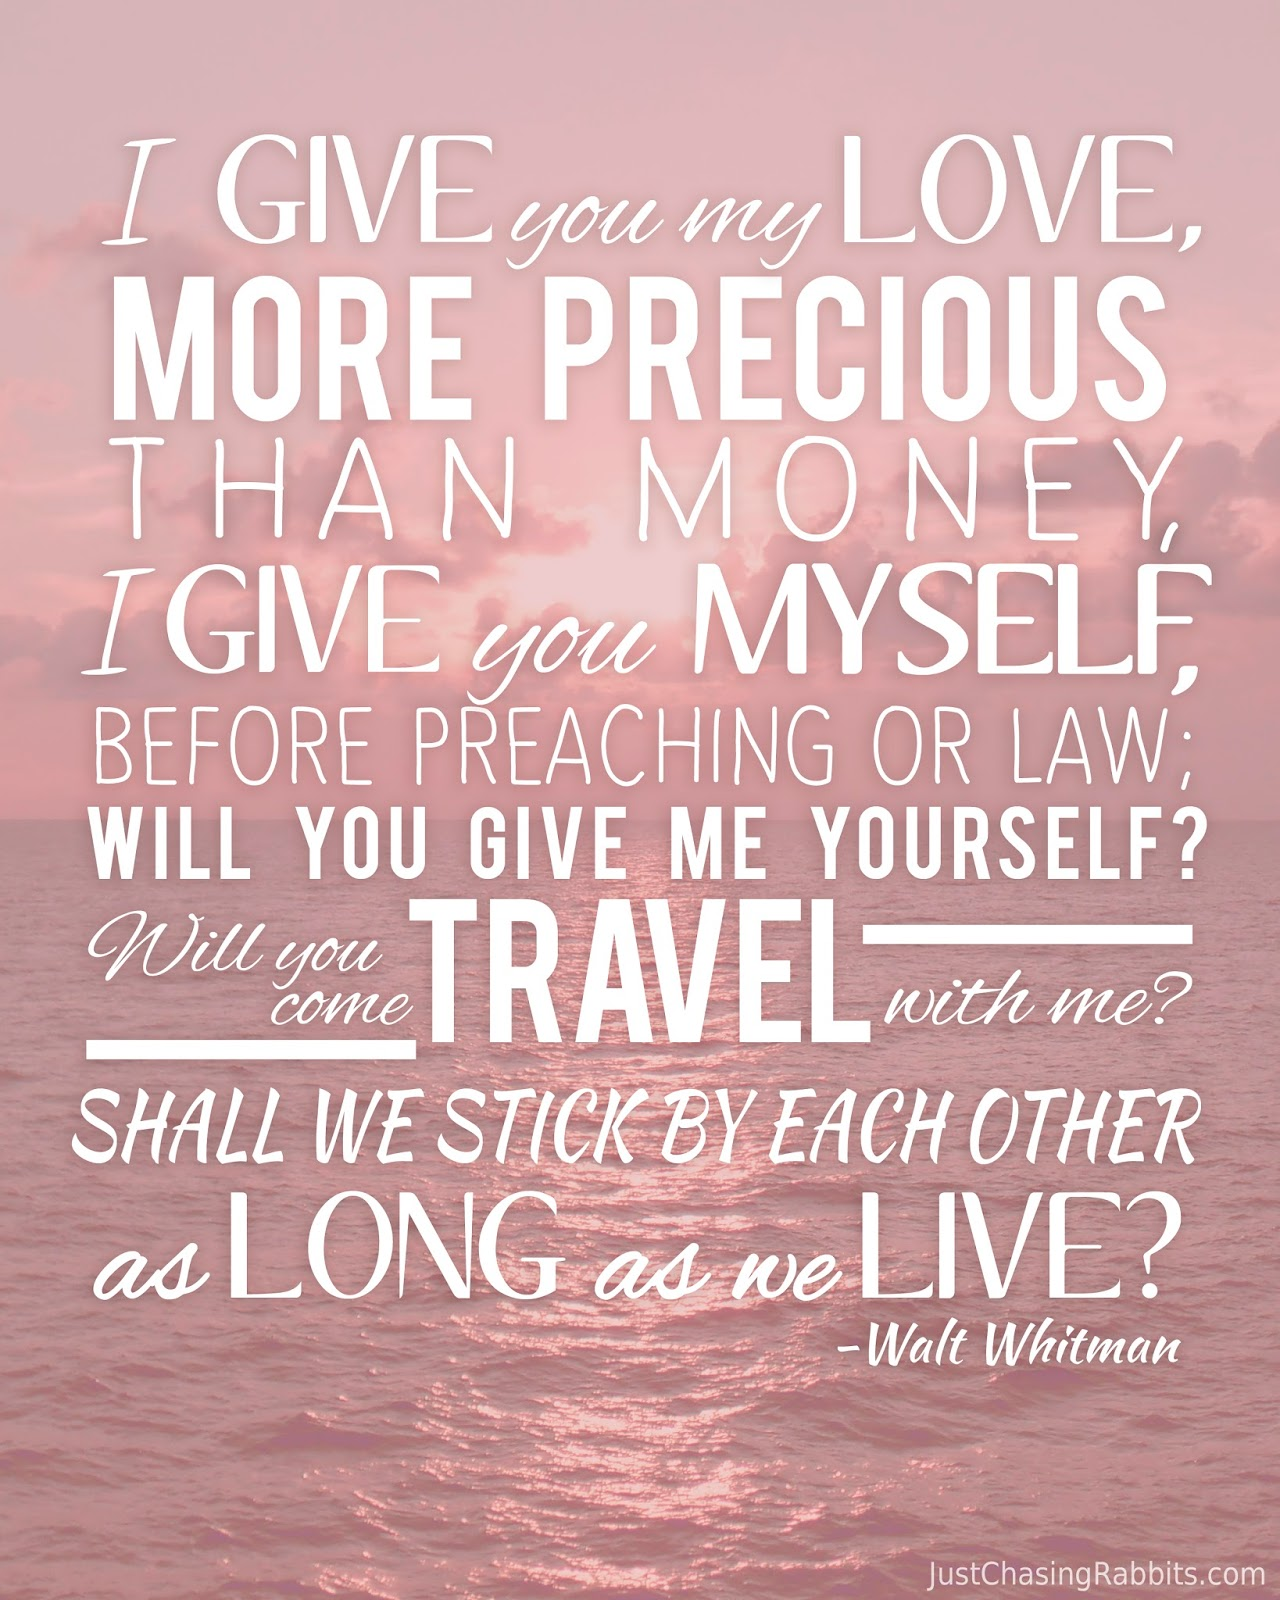 Walt Whitman Quotes Love: Free Valentine Printable For Travel Lovers And Lovers Who